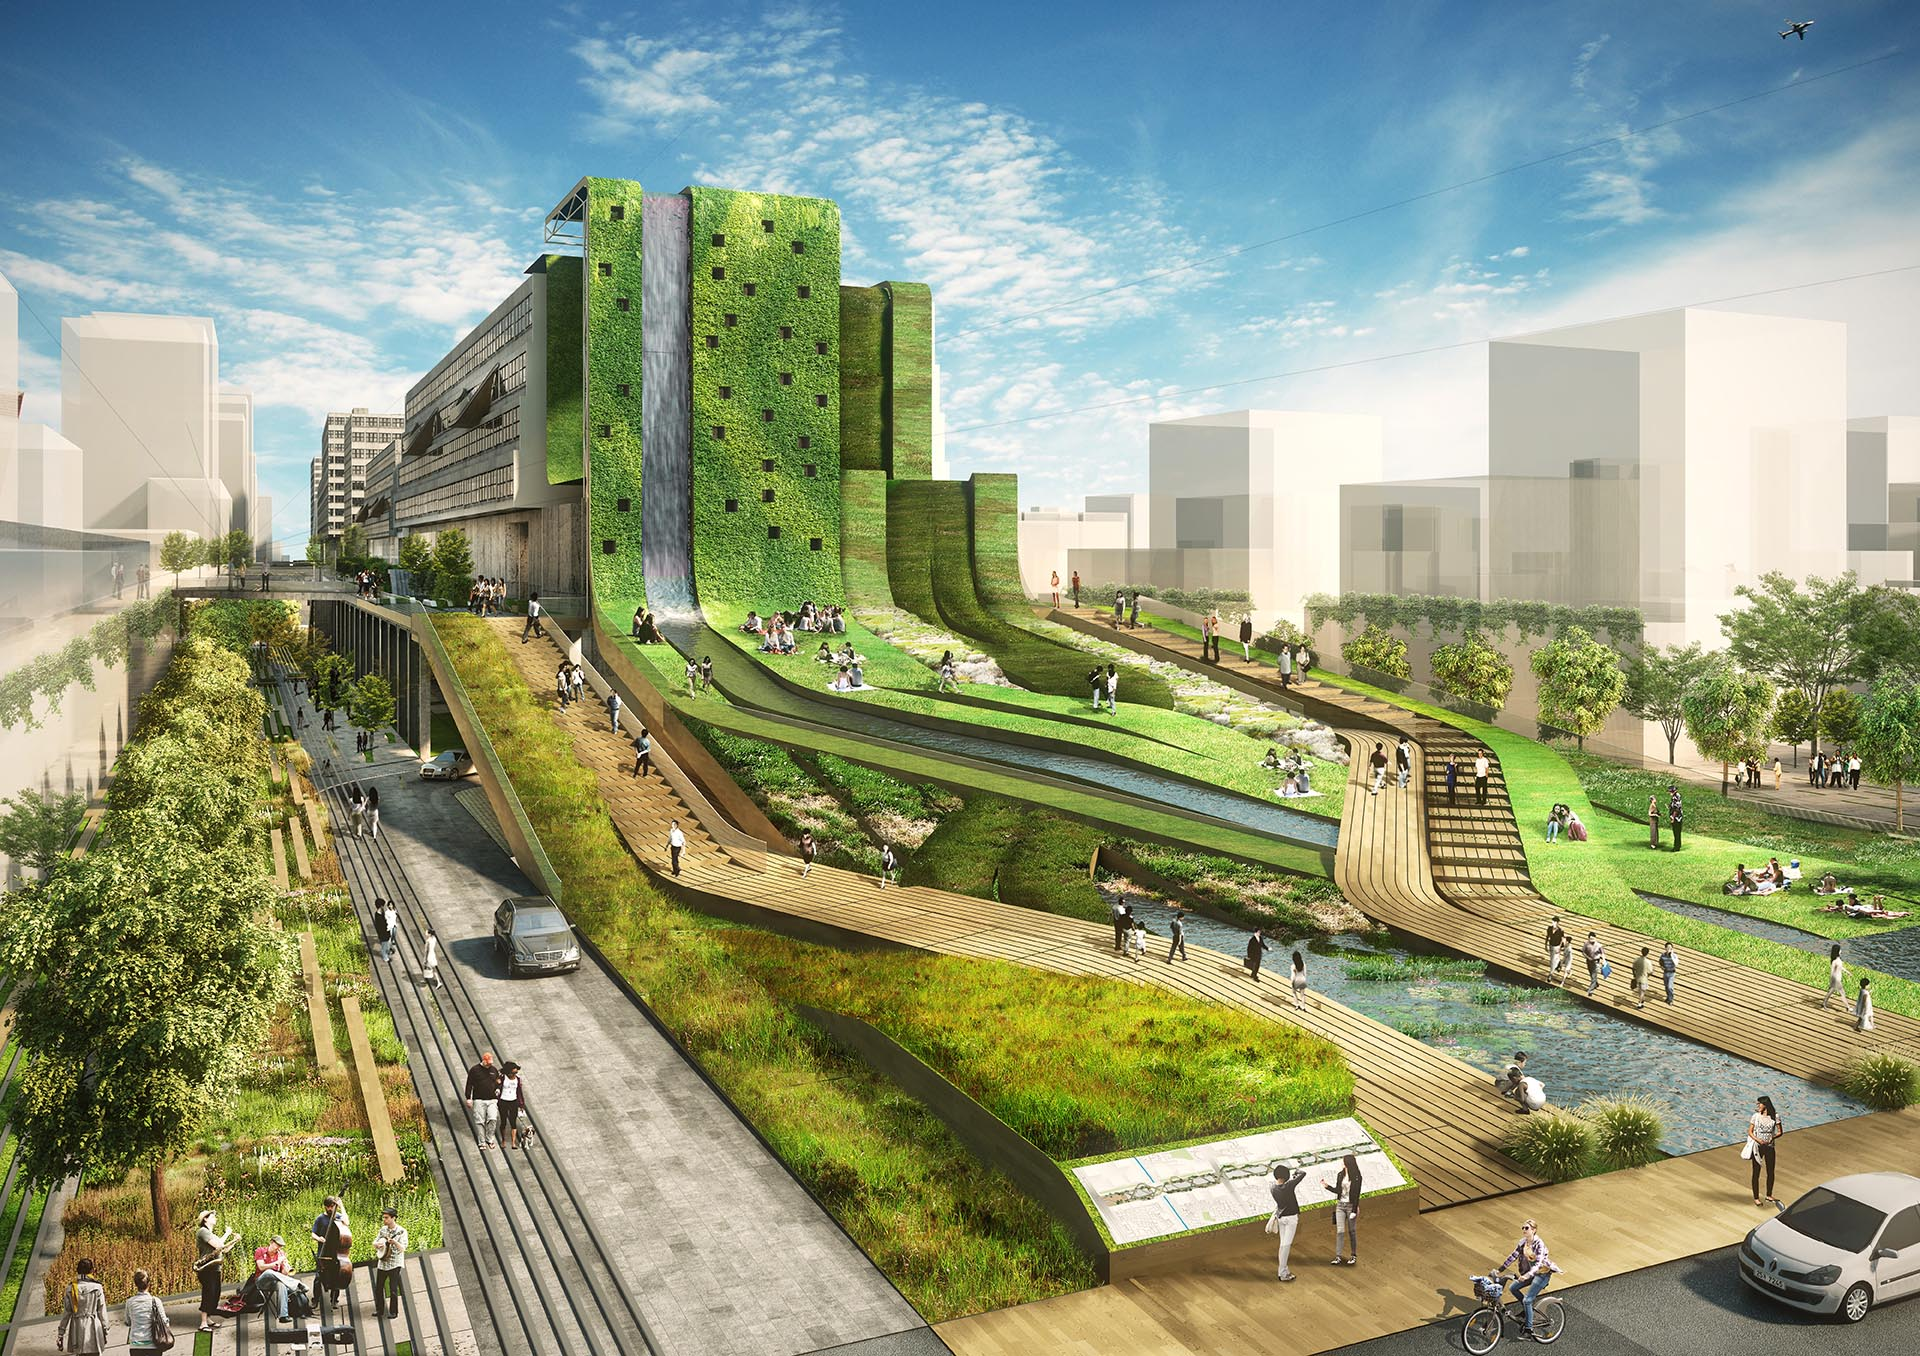 Seun, high line in Korea, 3d print landscape, urban planning, retrofit, factory rehab, seoul, greenwalk, elevated park, sustainable design, architecture, hipster, business evolution